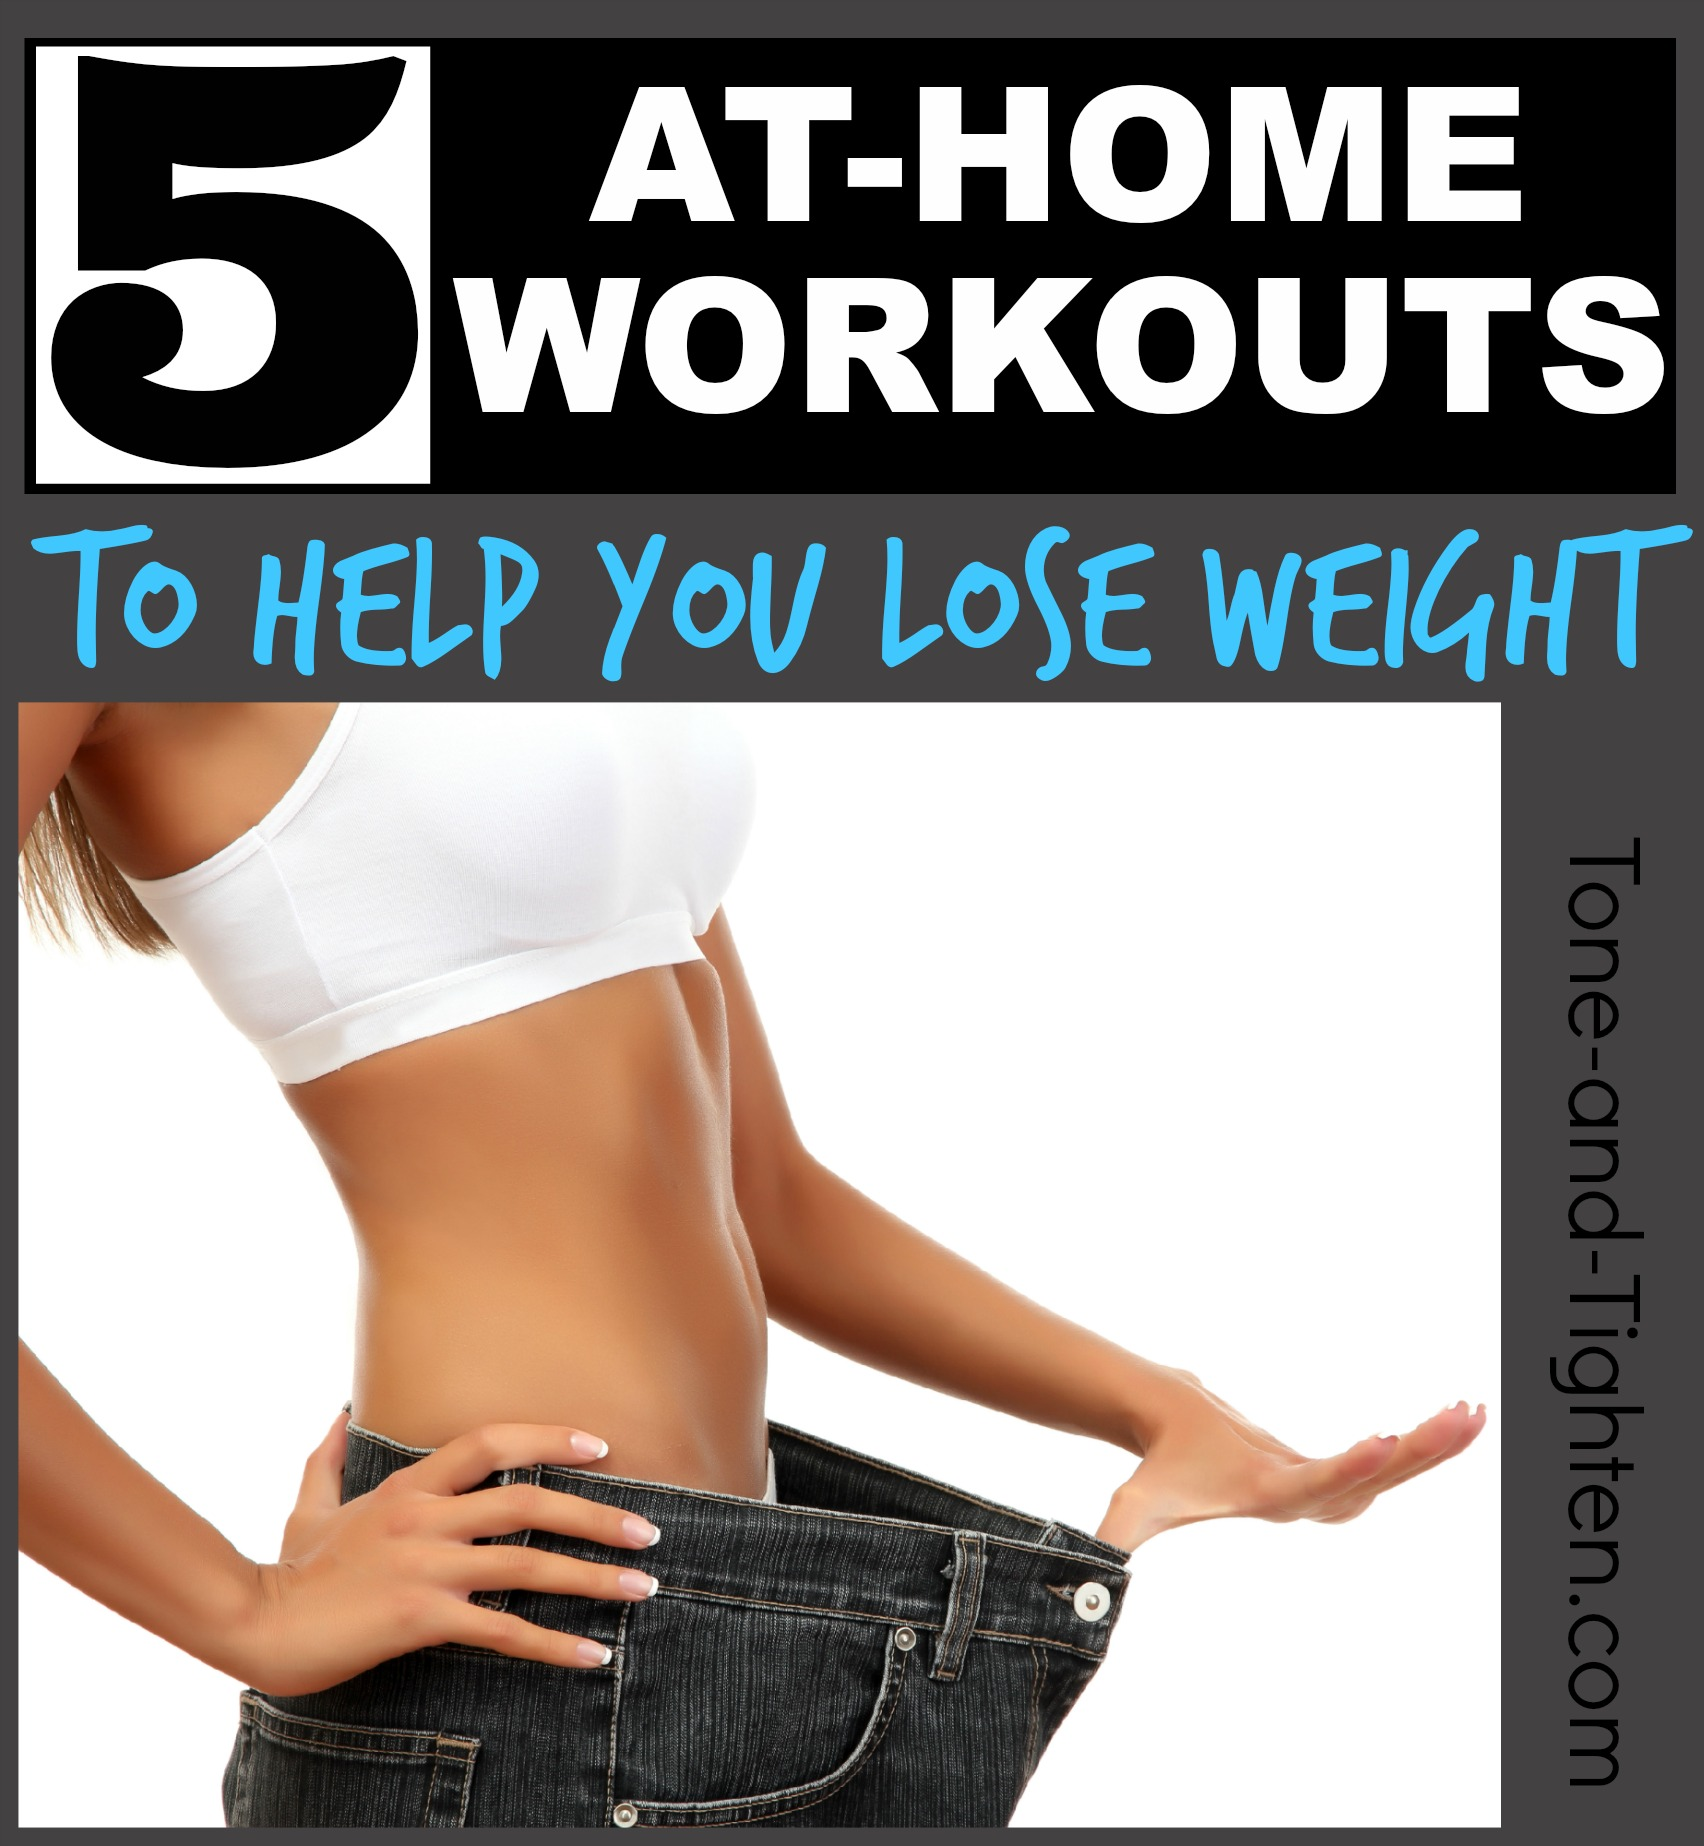 Home Workouts To Lose Weight Quick - Most Popular Workout Programs